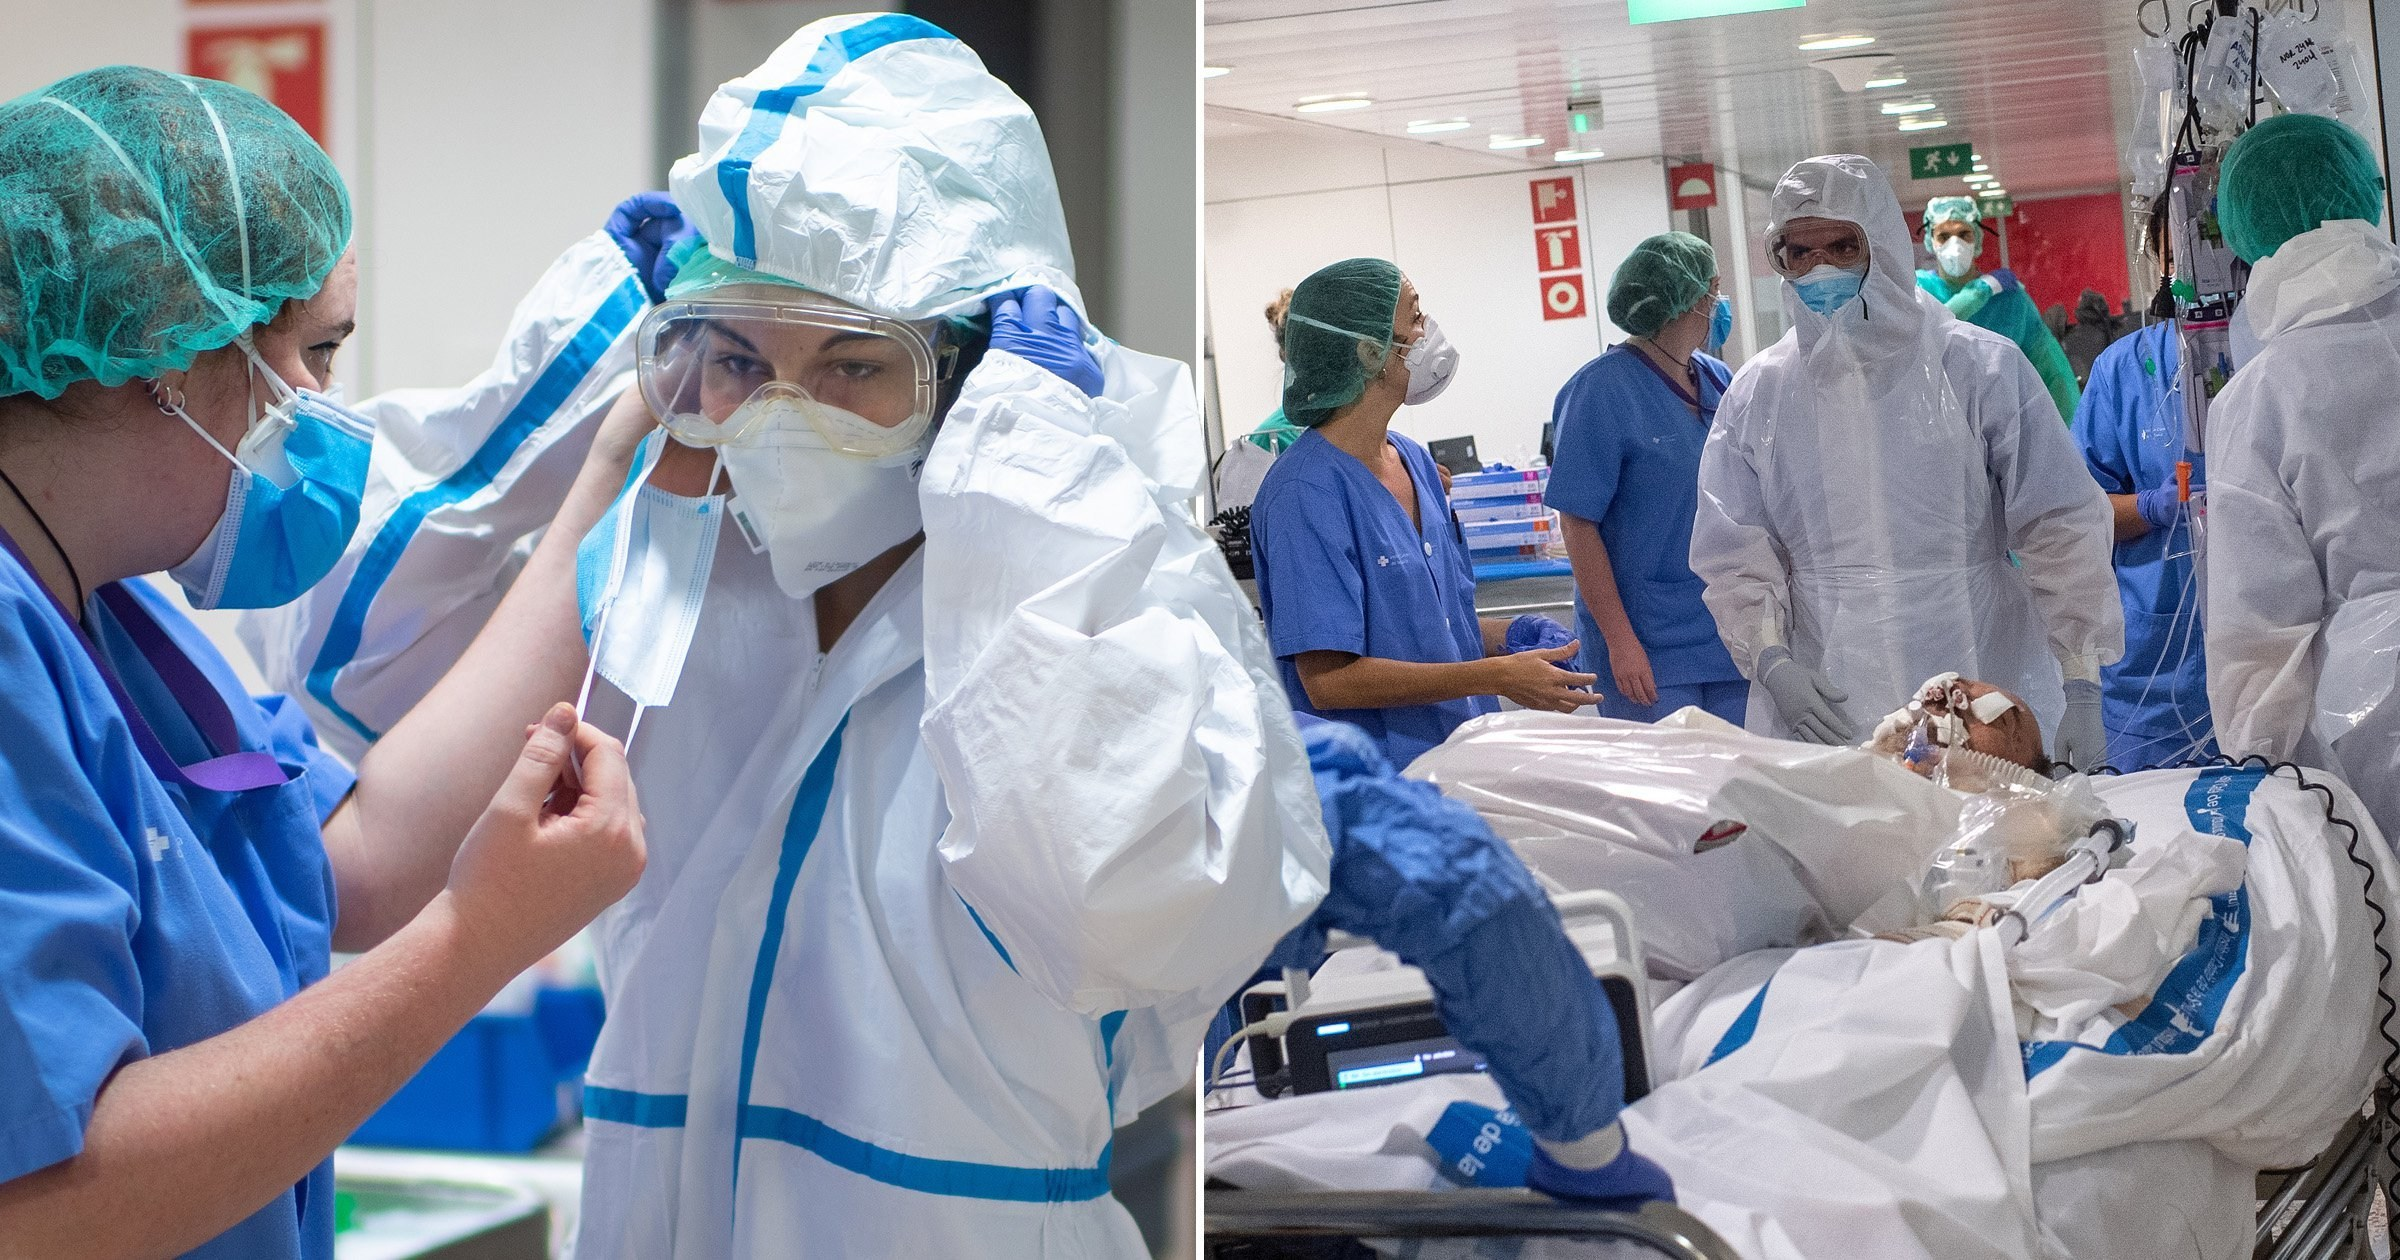 Spain sees lowest coronavirus death toll in 19 days with 510 lives lost